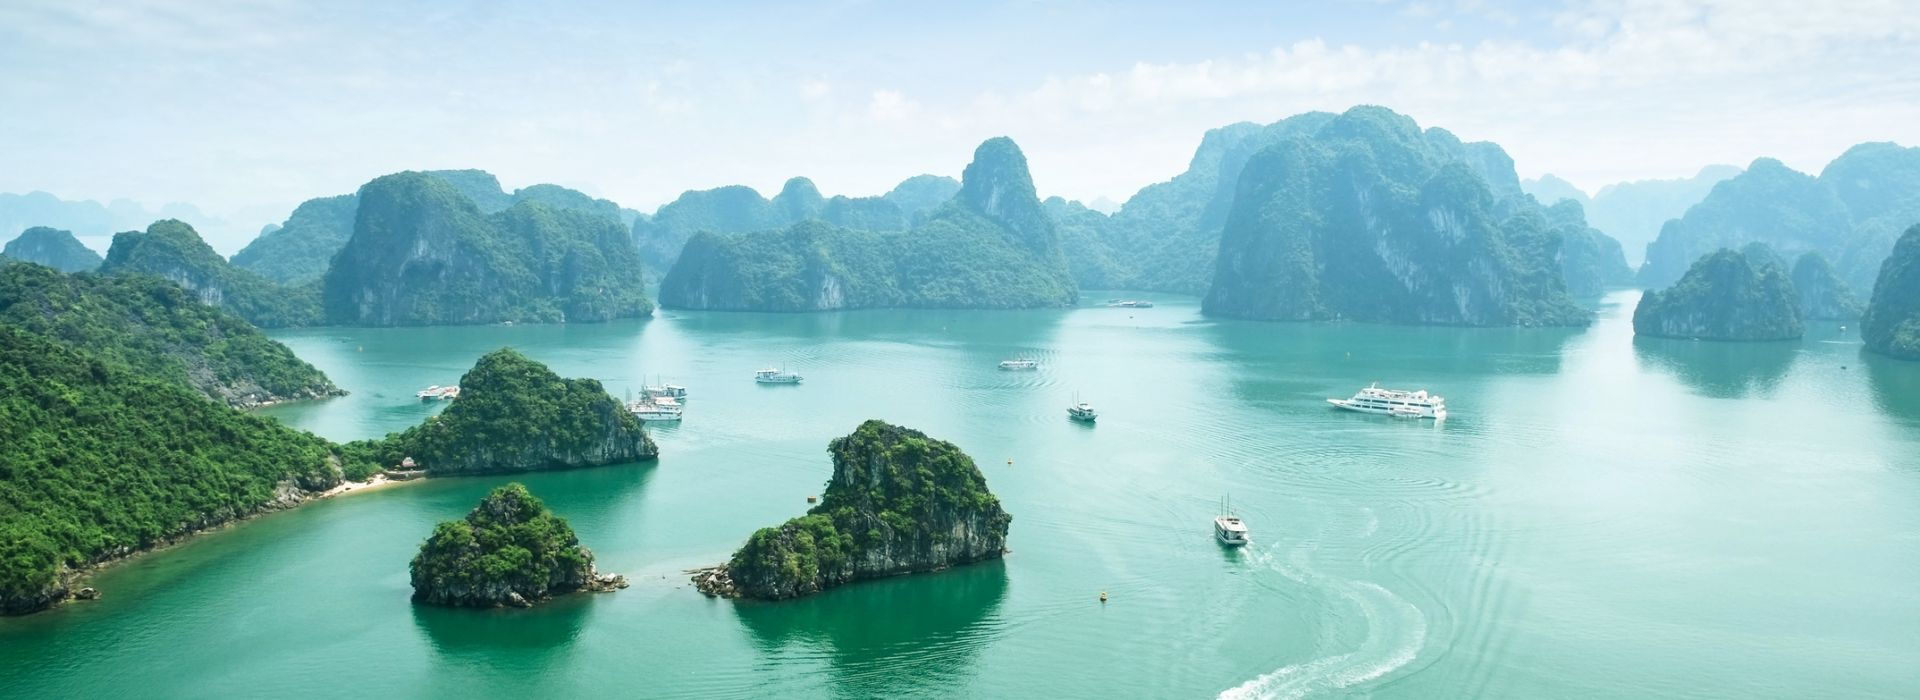 Boat tours, water sports and marine wildlife in Hoa Lu